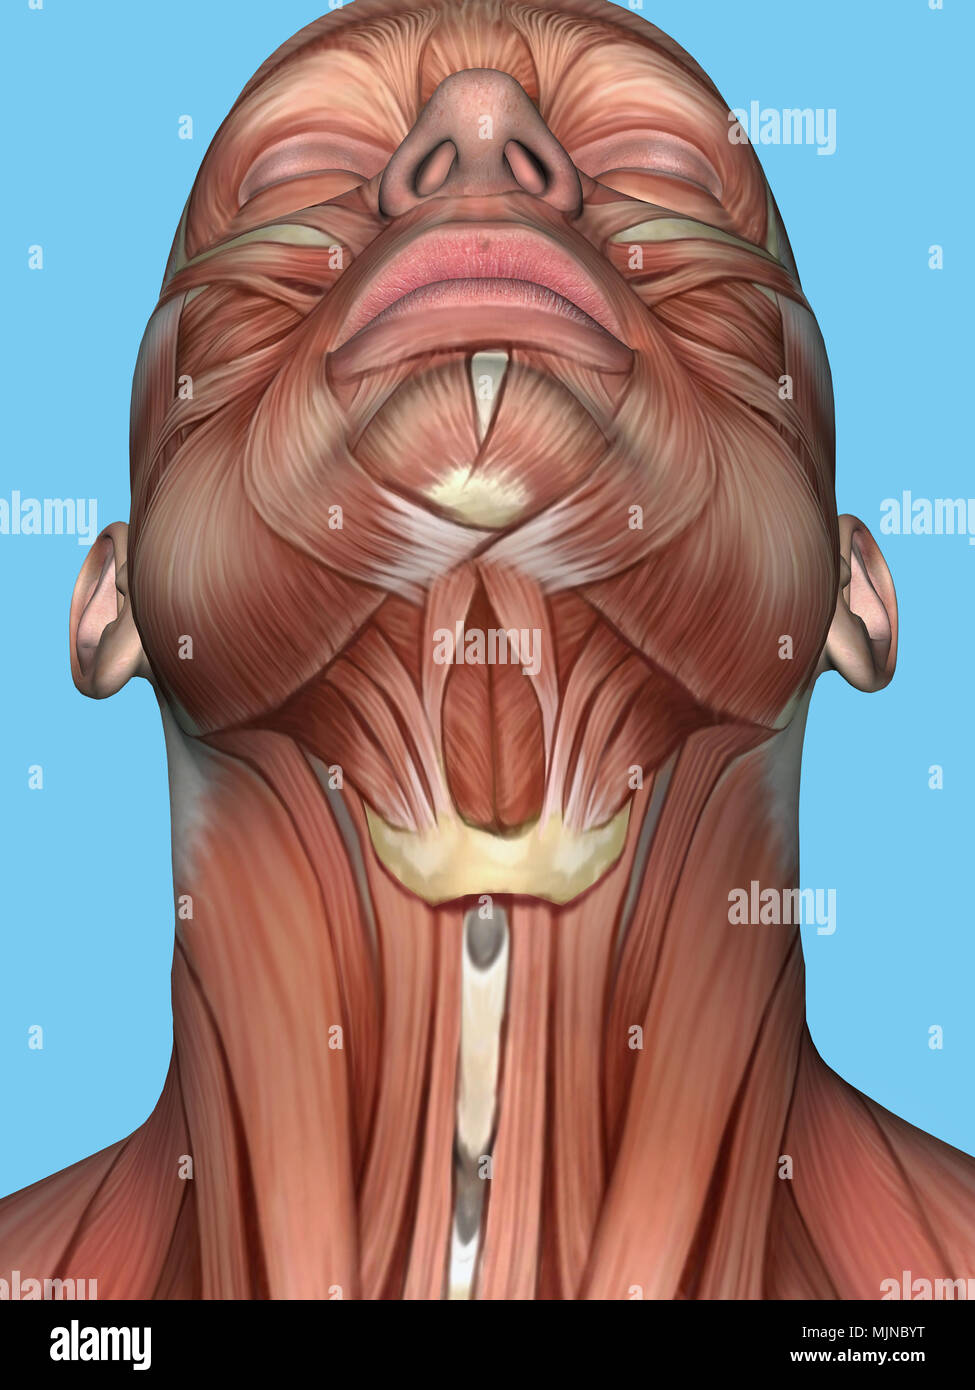 Anatomy Of Face And Neck Muscle Stock Photo 183637884 Alamy